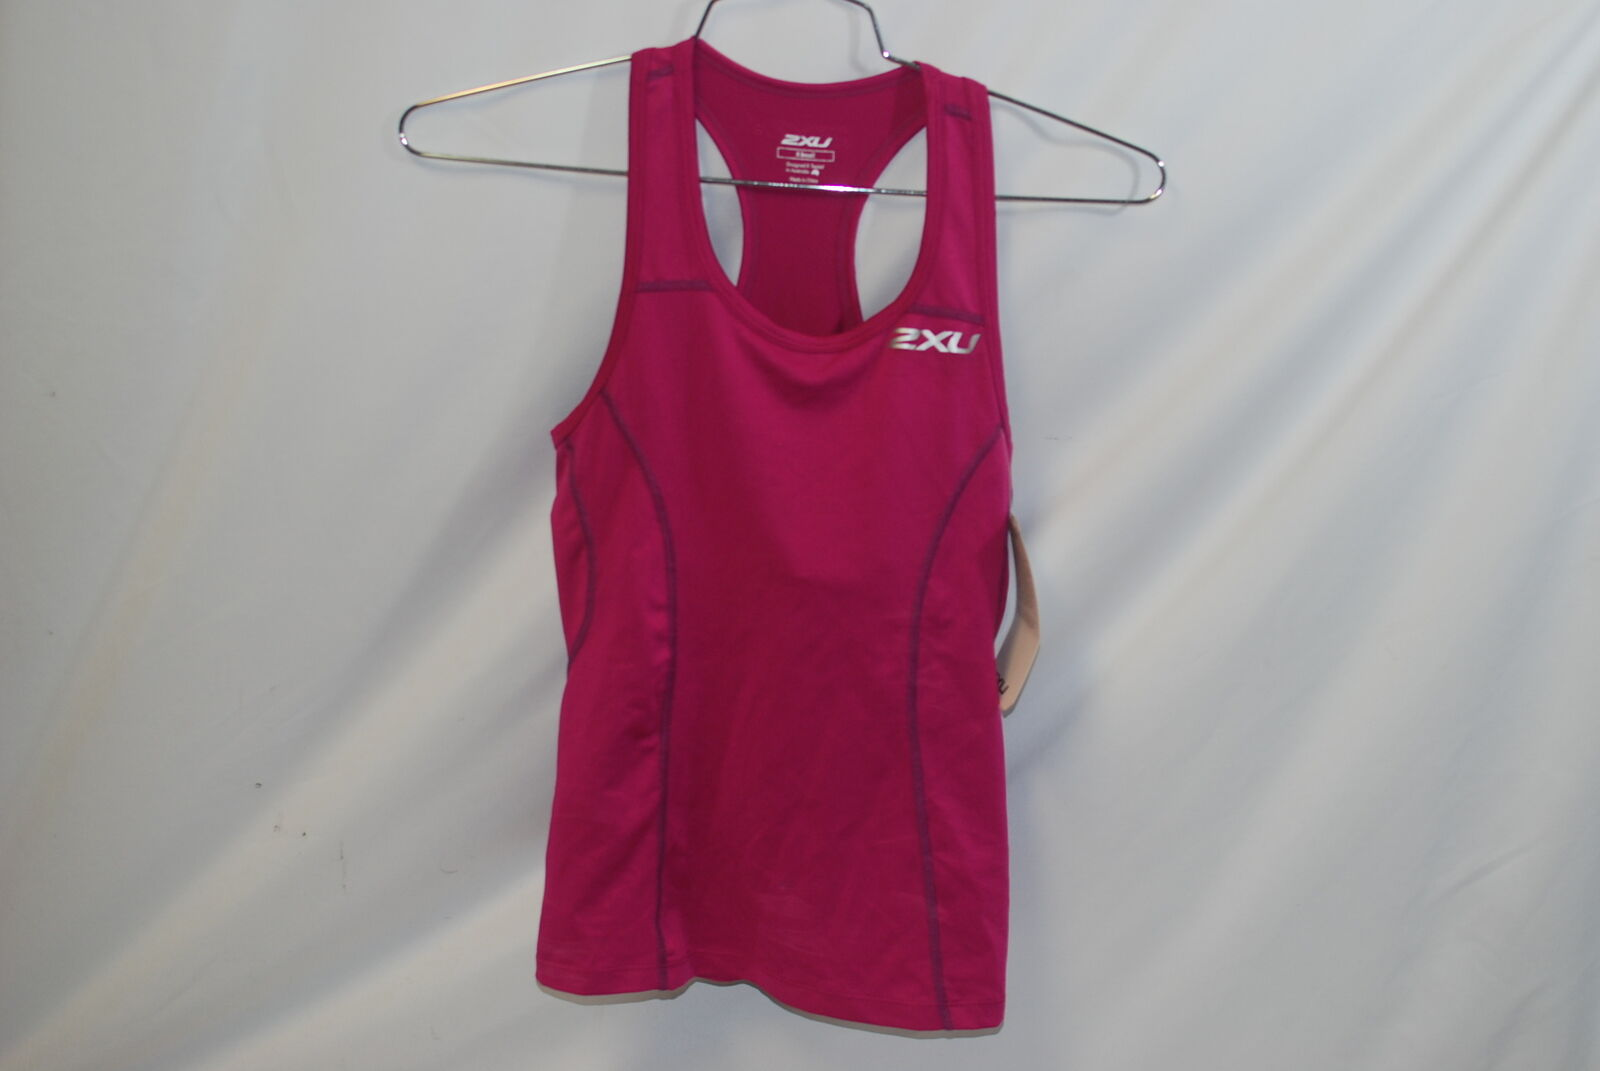 2XU Cycling donna Active Tri Singlet Ultra violaPrism viola XS Extra Small